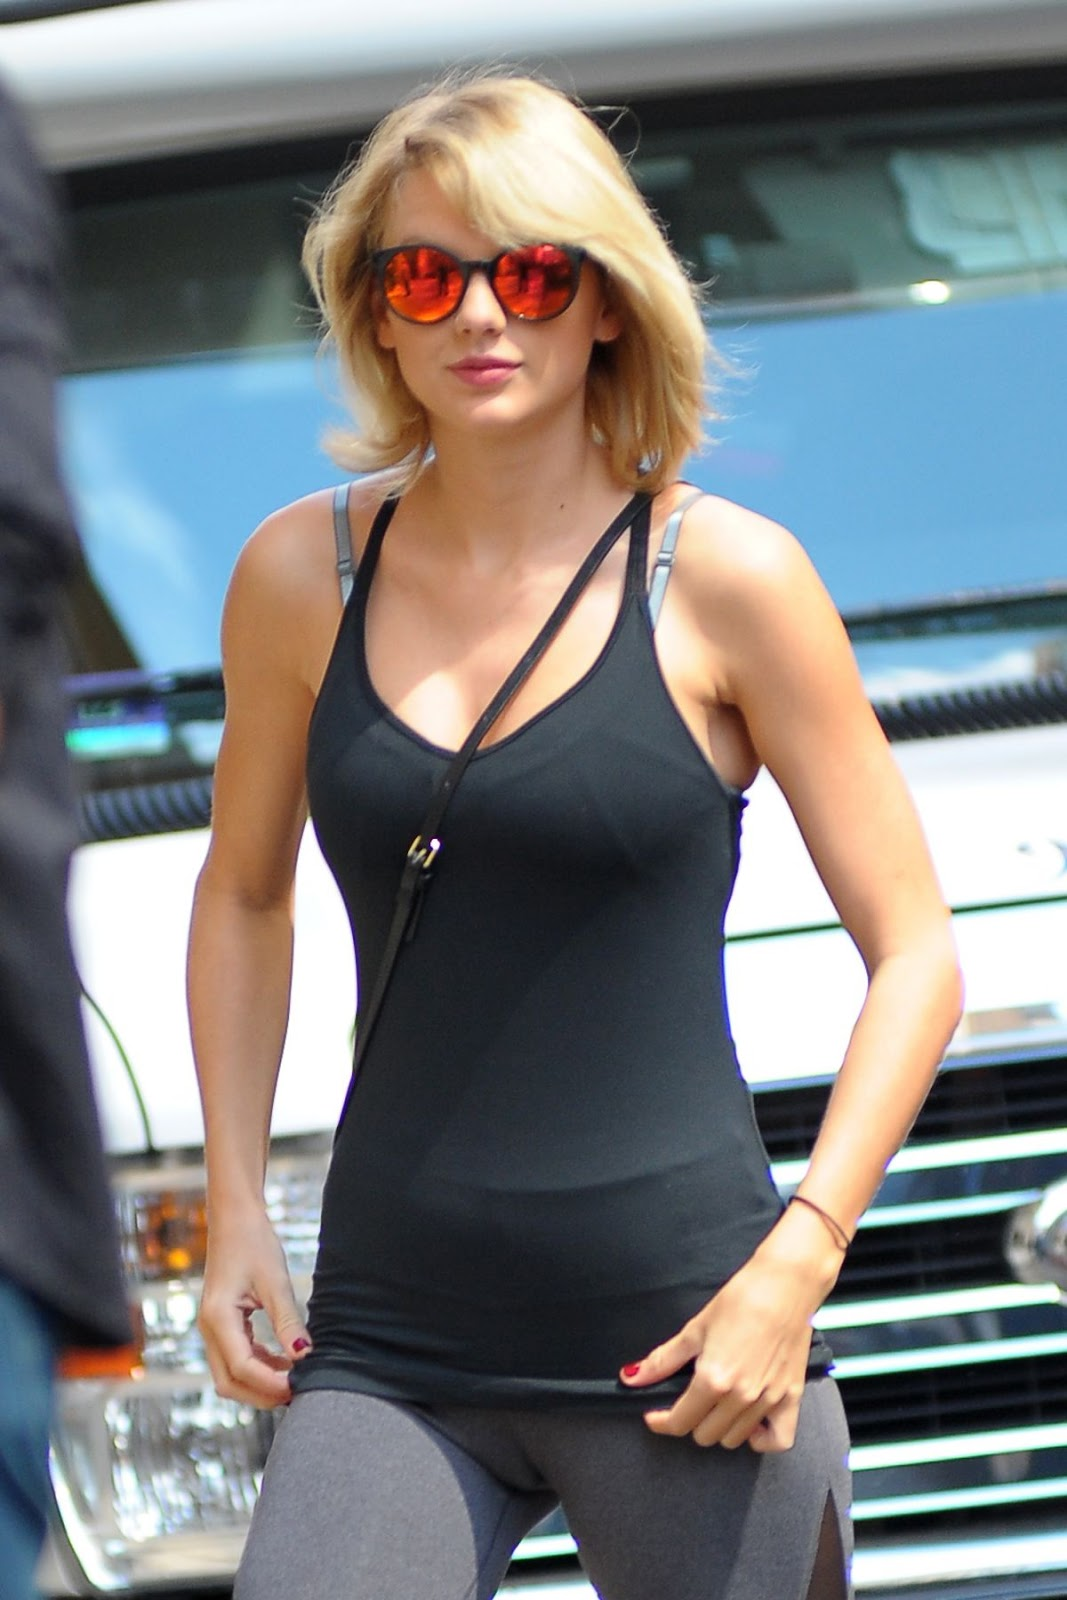 For Tight Teen Taylor Swift 64